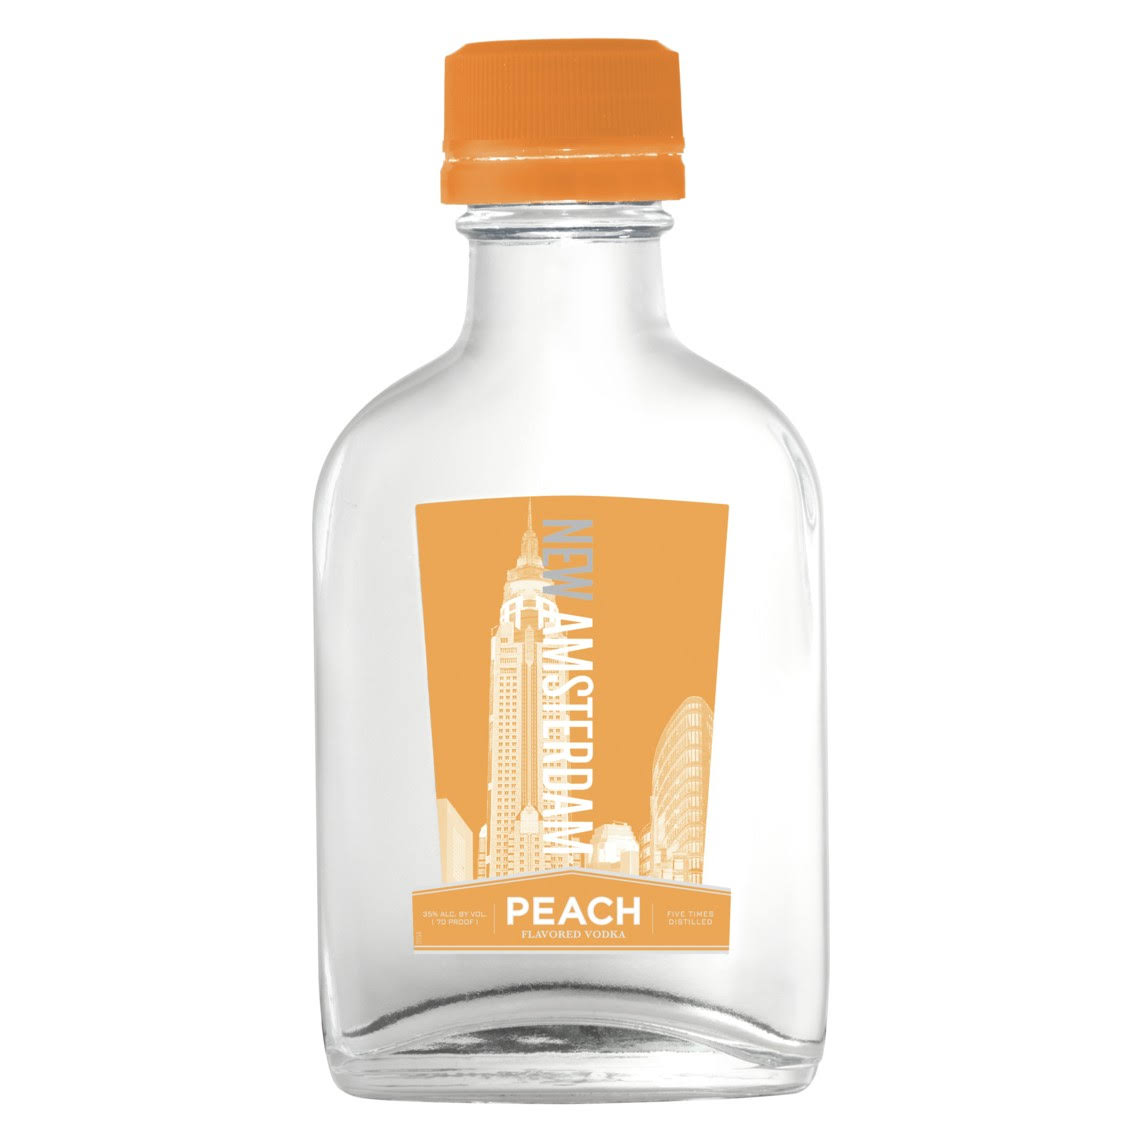 New Amsterdam Peach Vodka - 100ml Bottle, Size: 100 ml